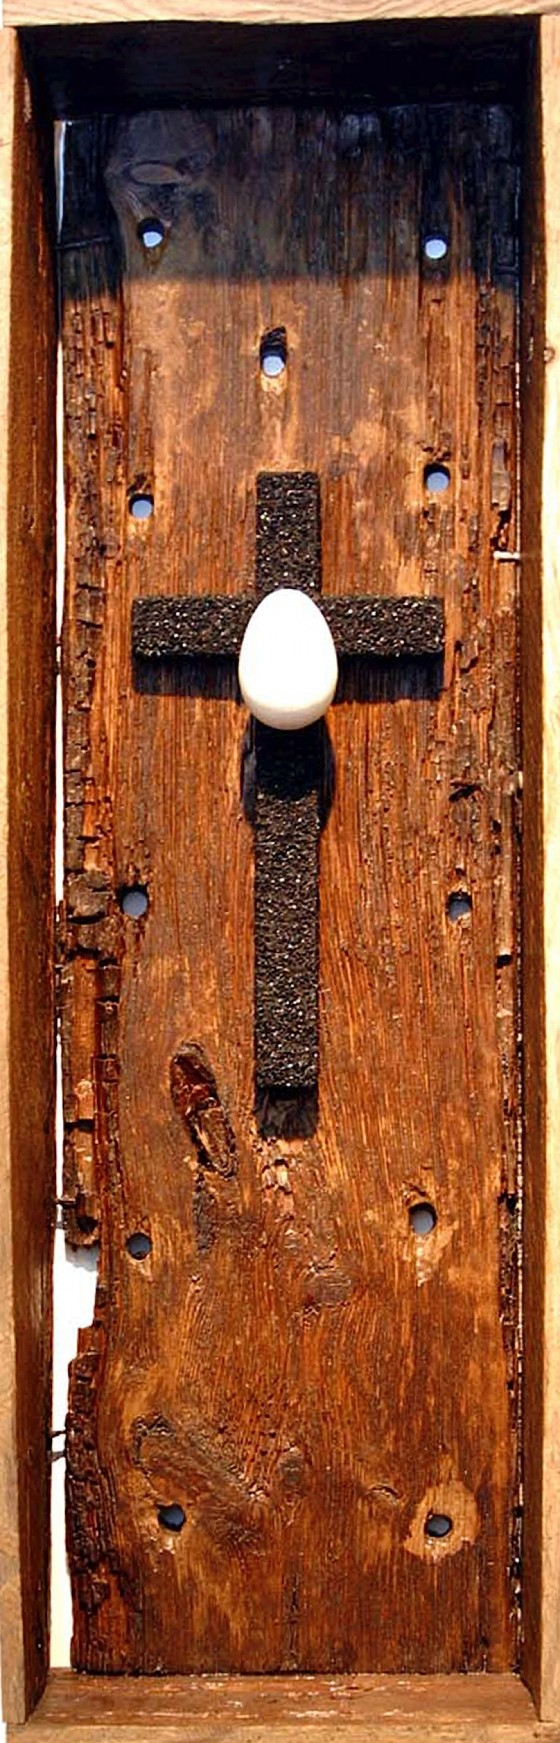 Eclipse (Thought Engine) 2005 Coal-clad crucifix, painted wooden egg, in seed propagation box. 78 x 26 x 12.5 cm